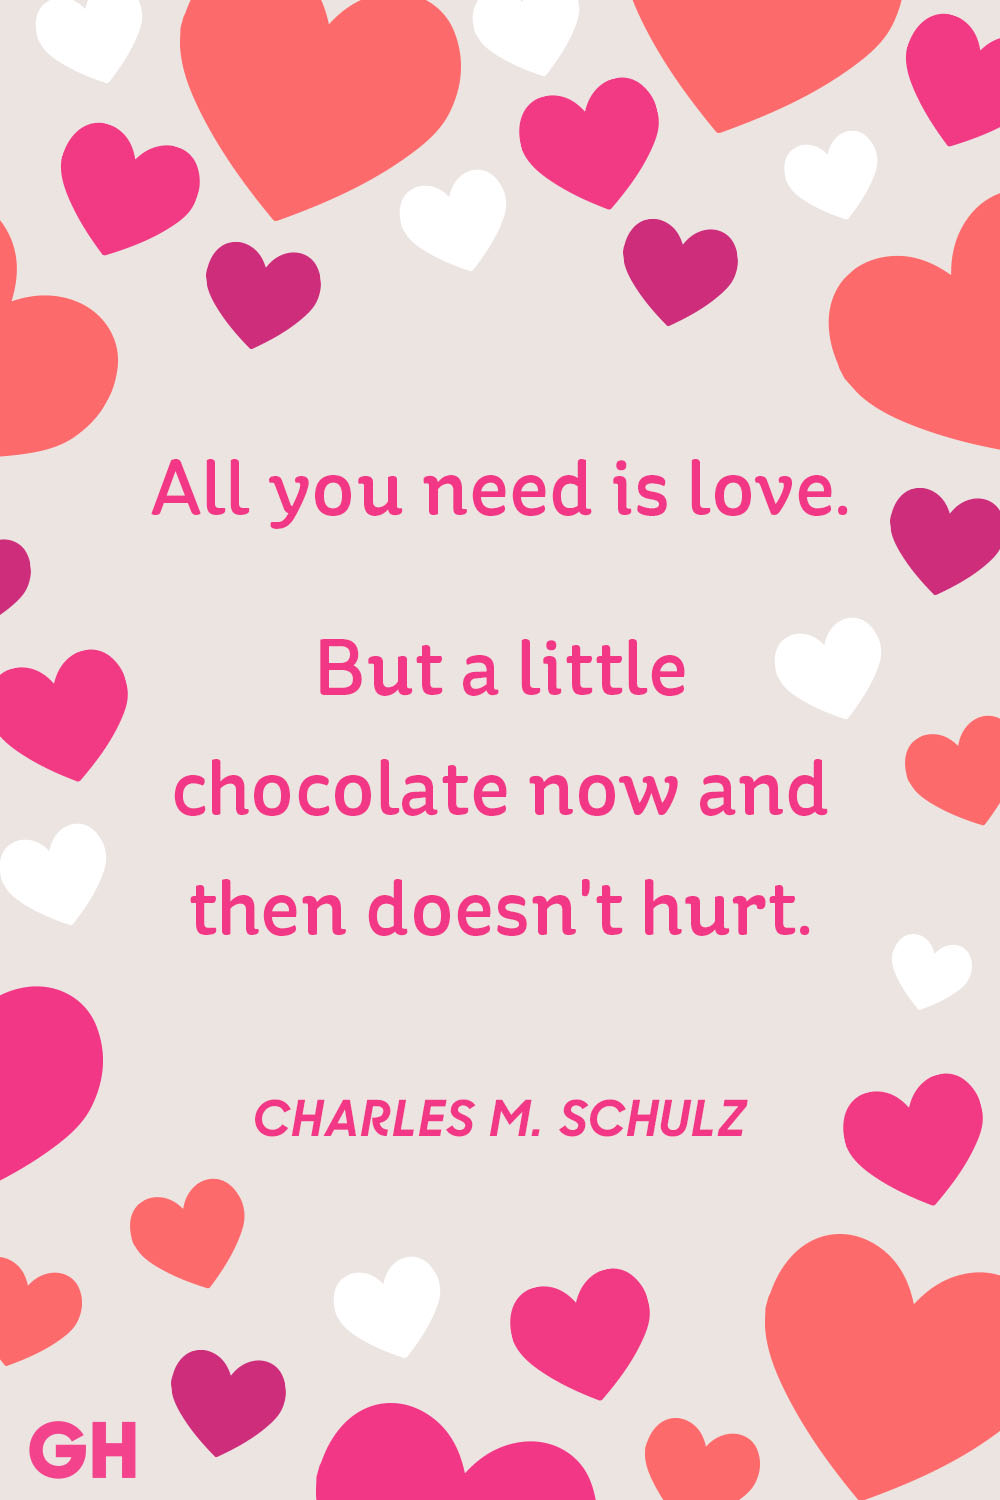 Love Quotes For Valentines Day 30 Cute Valentine's Day Quotes  Best Romantic Quotes About